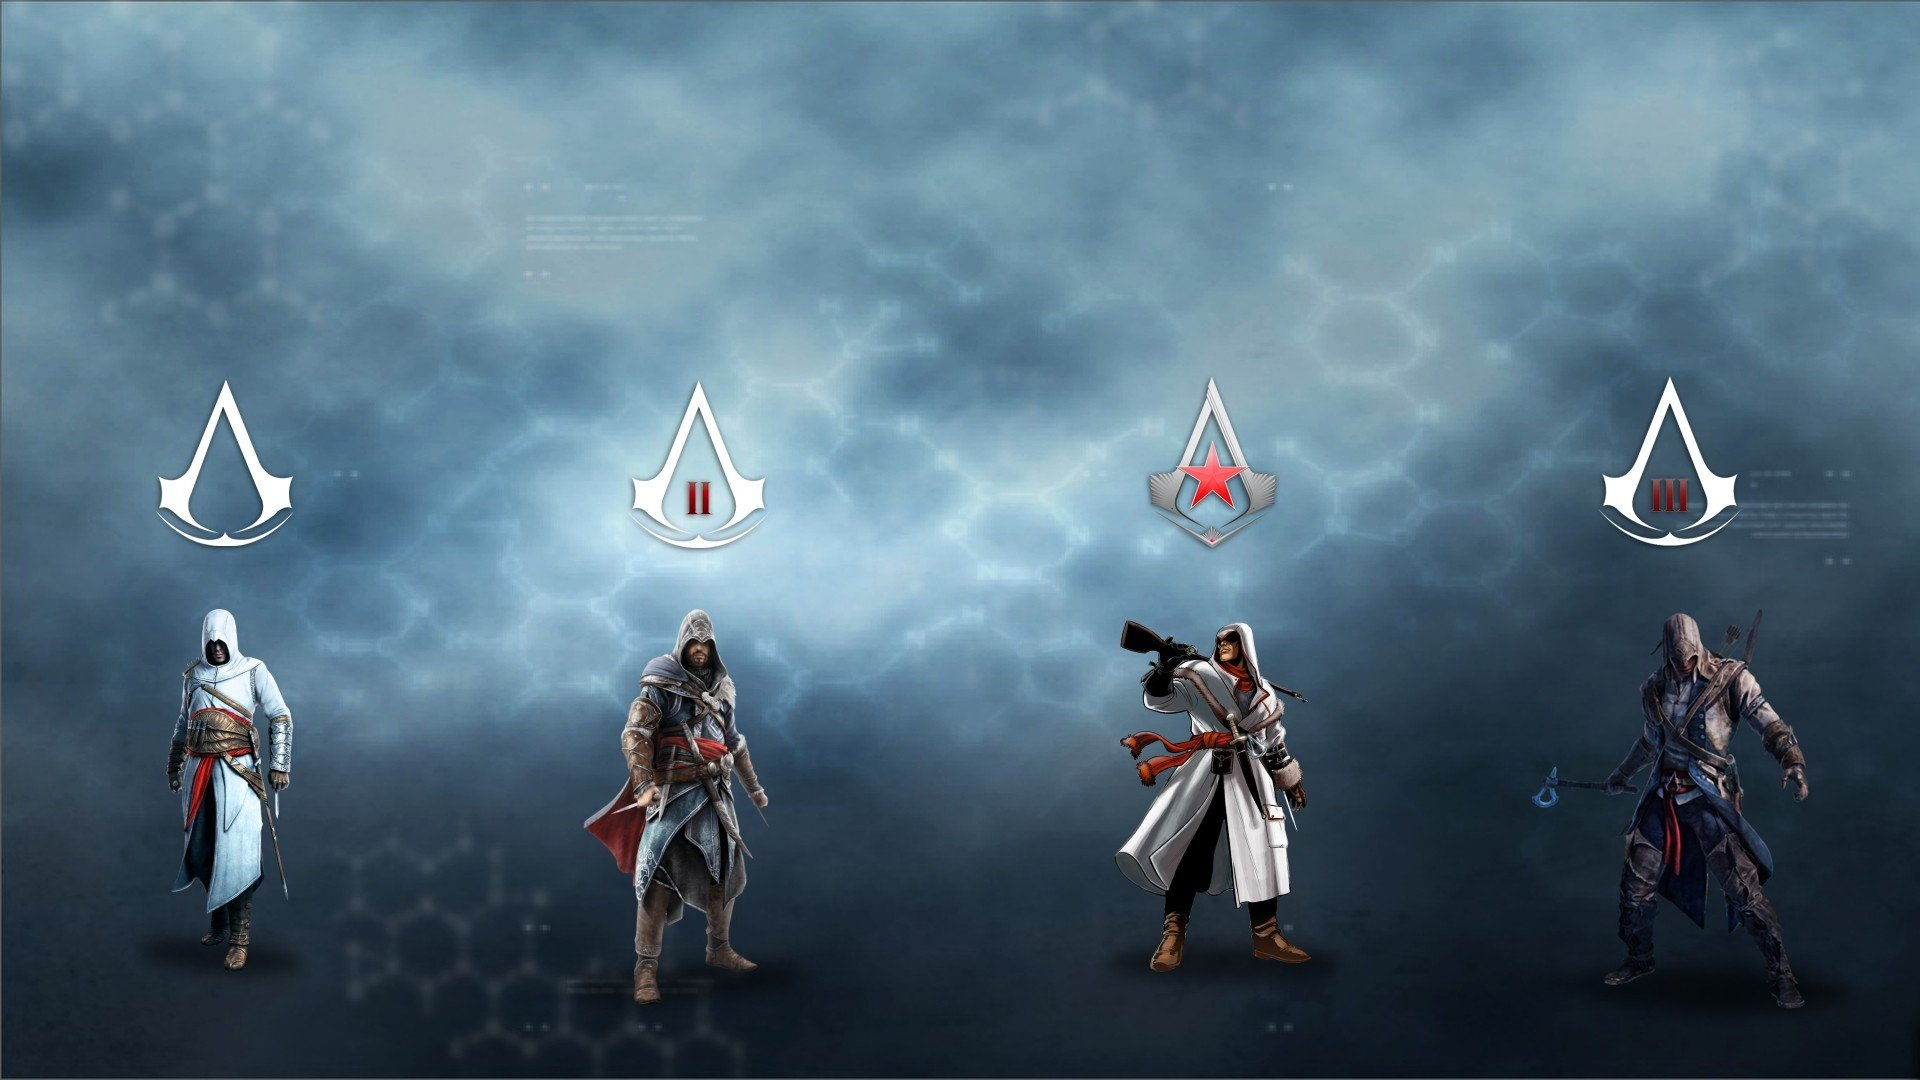 Assassins Creed Characters Assassins Creed 2 Assassins Creed 3